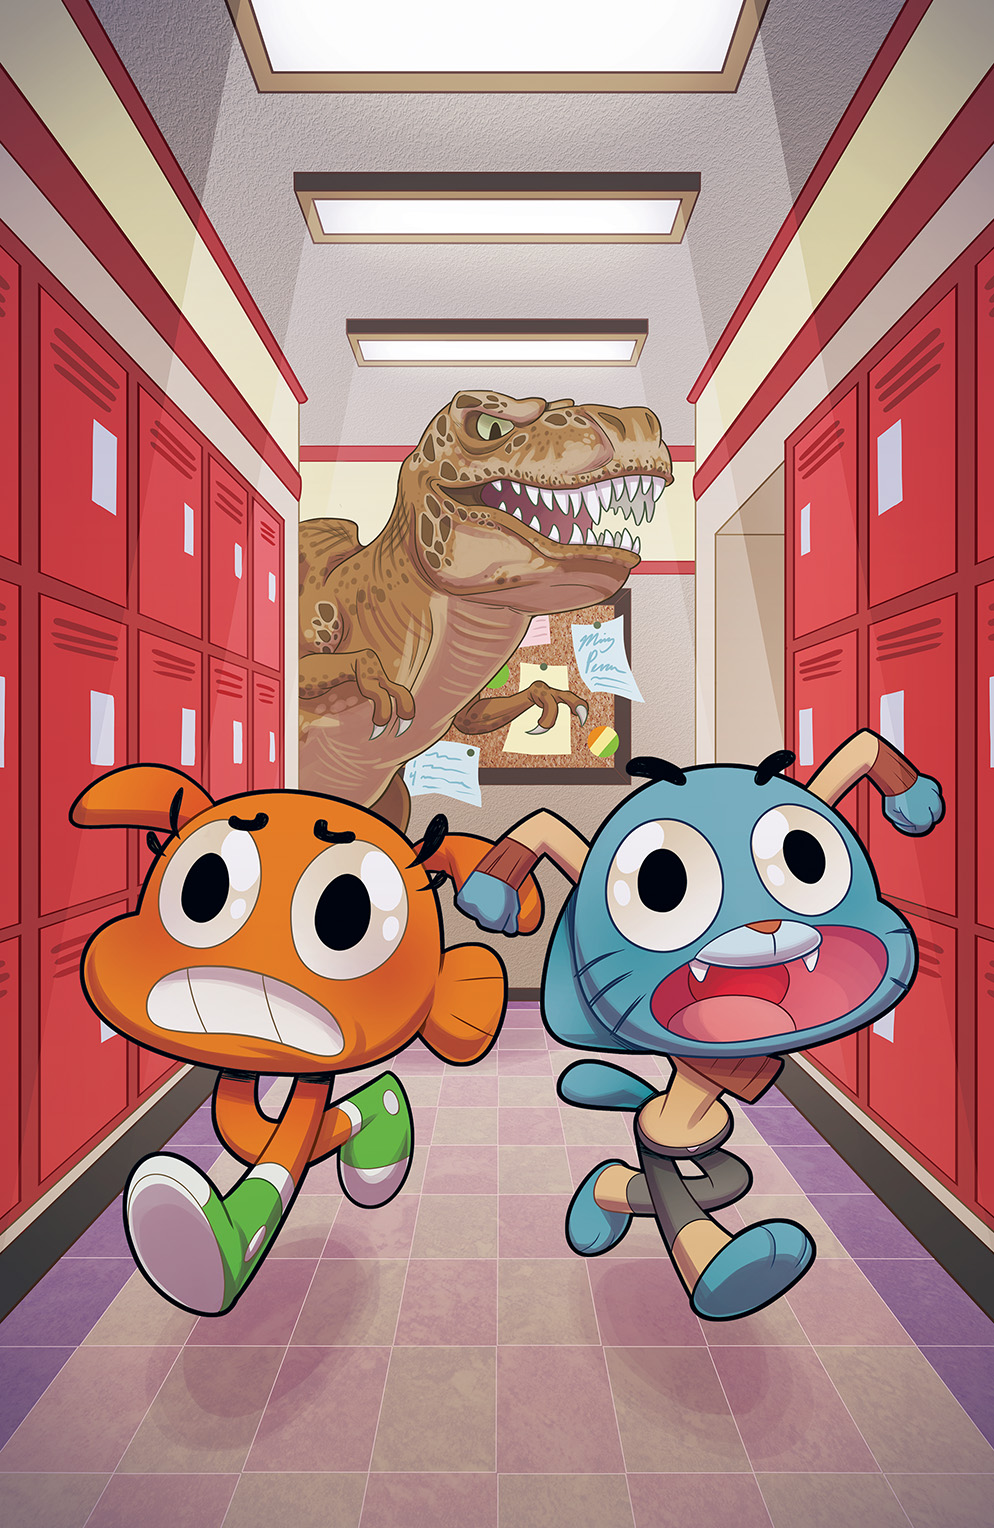 The Amazing World of Gumball #8 Cover A by Missy Pena